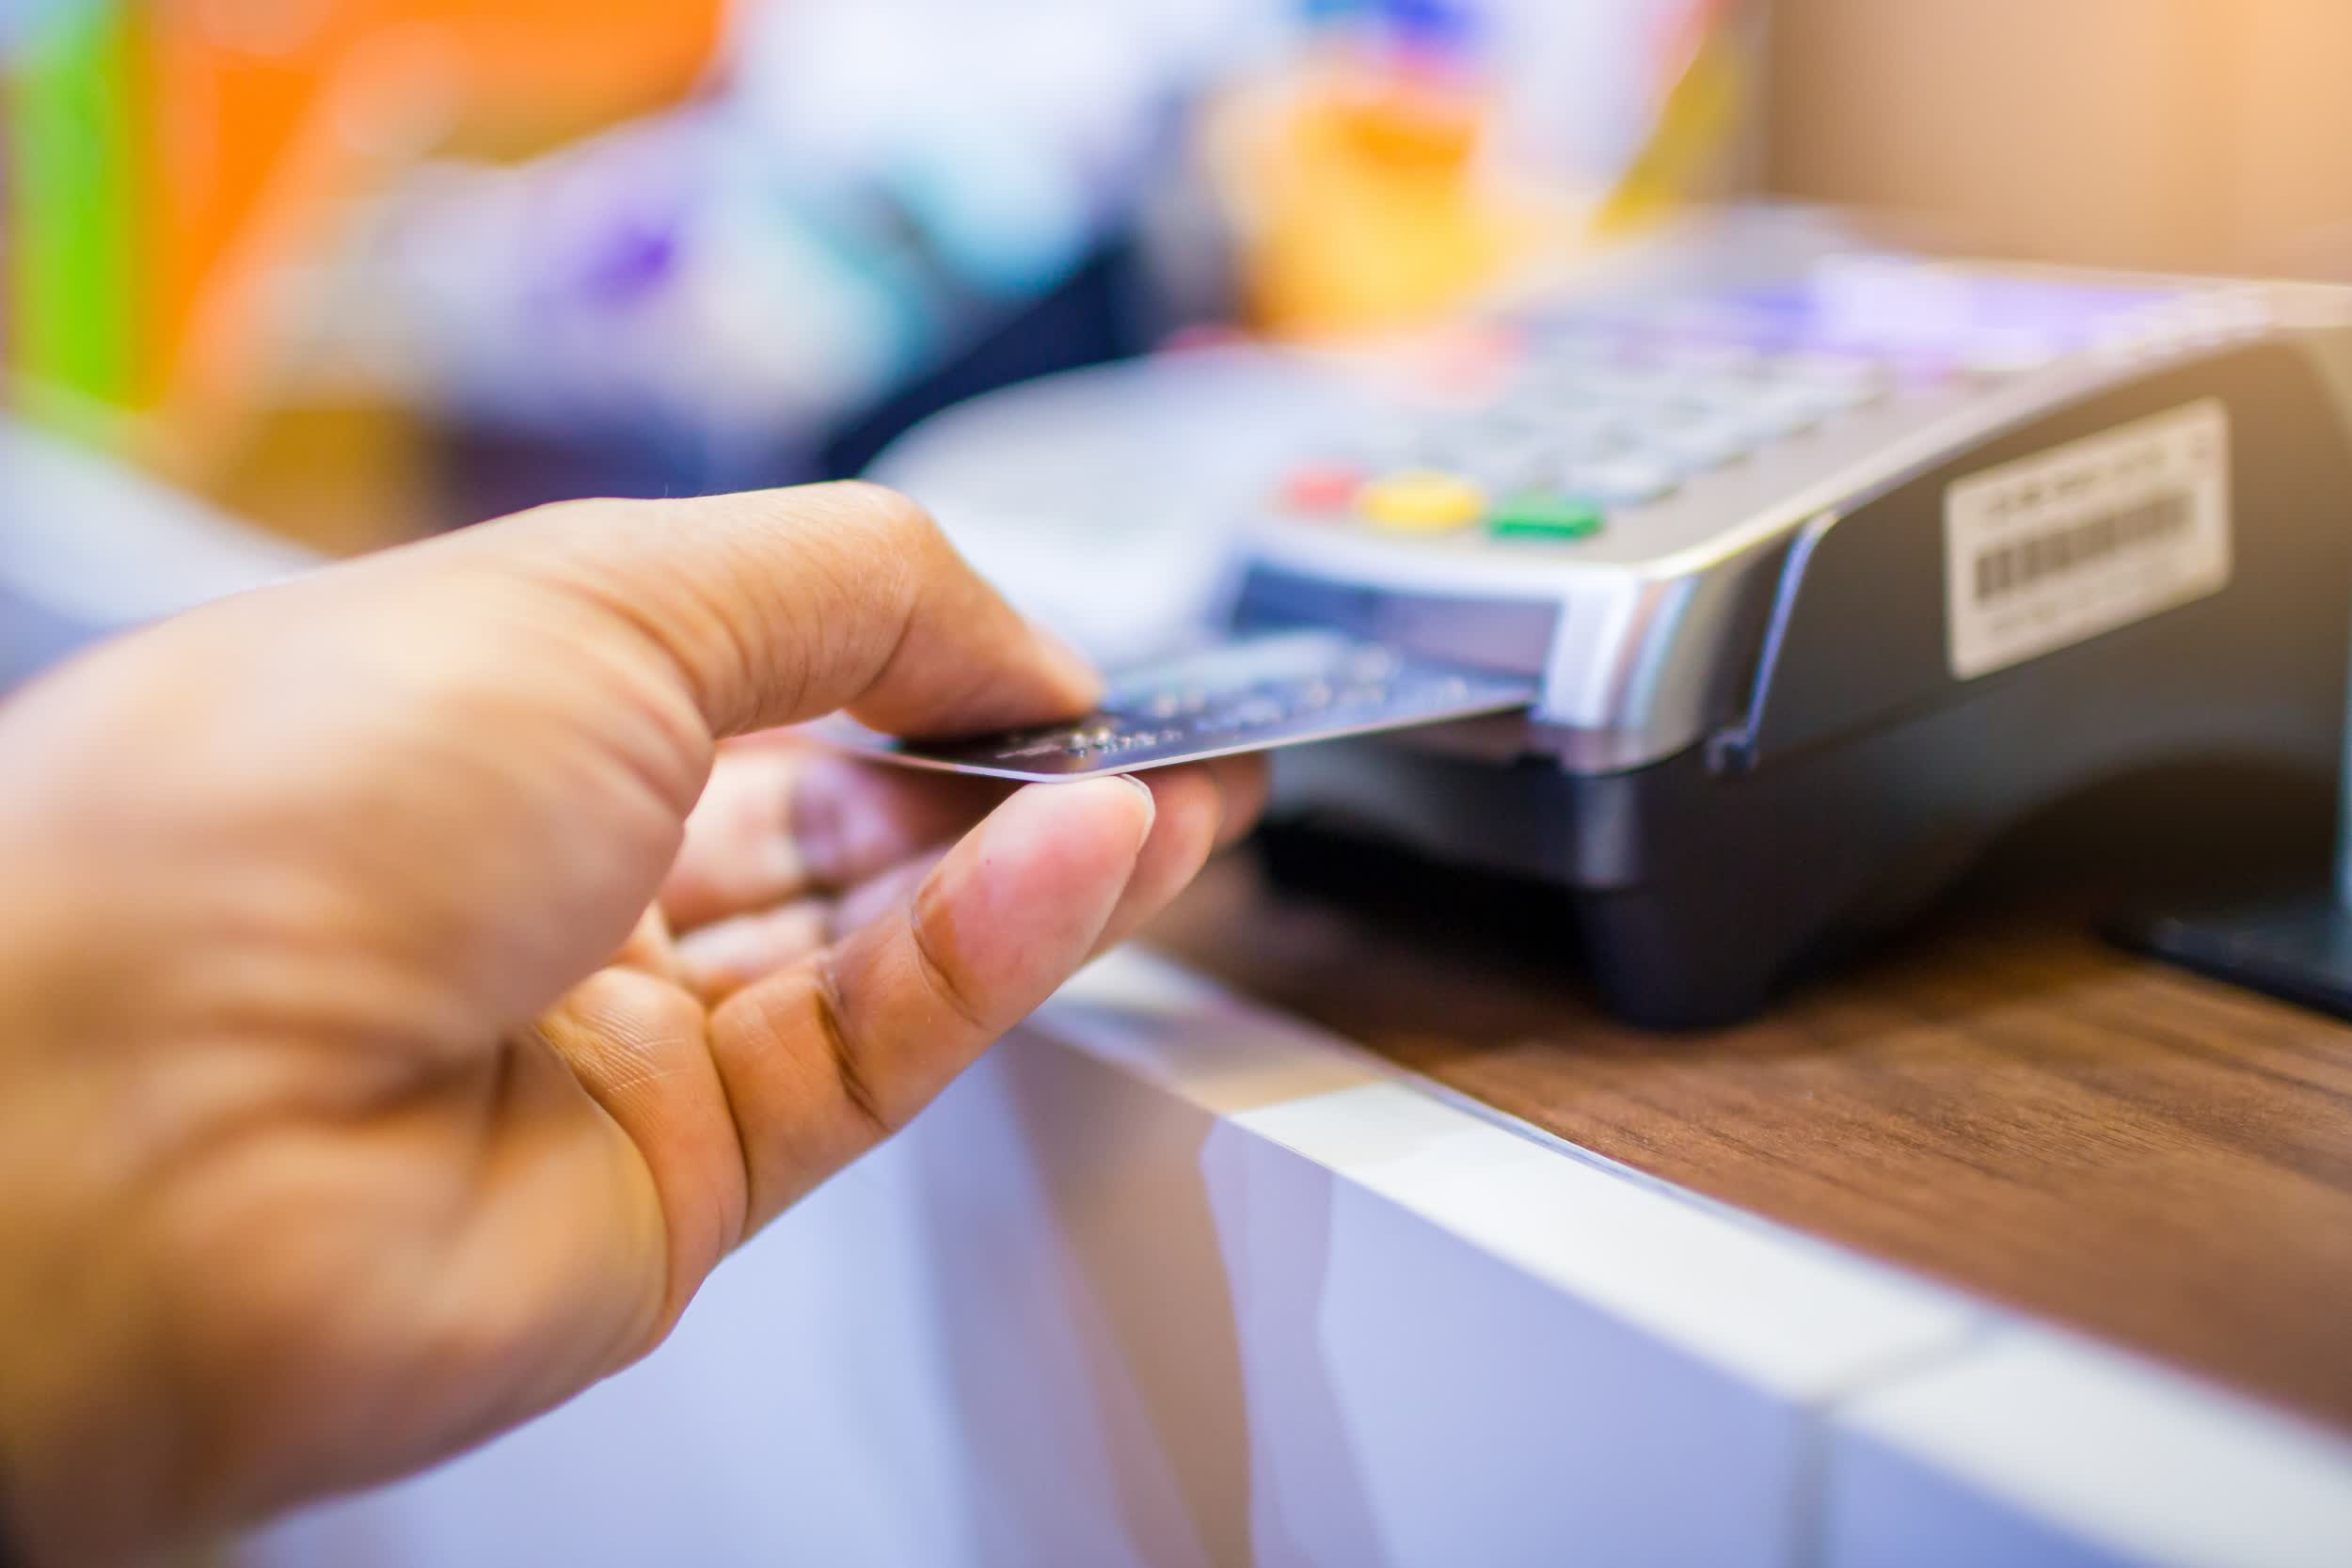 Samsung and Mastercard team up to create a payment card with a built-in fingerprint reader